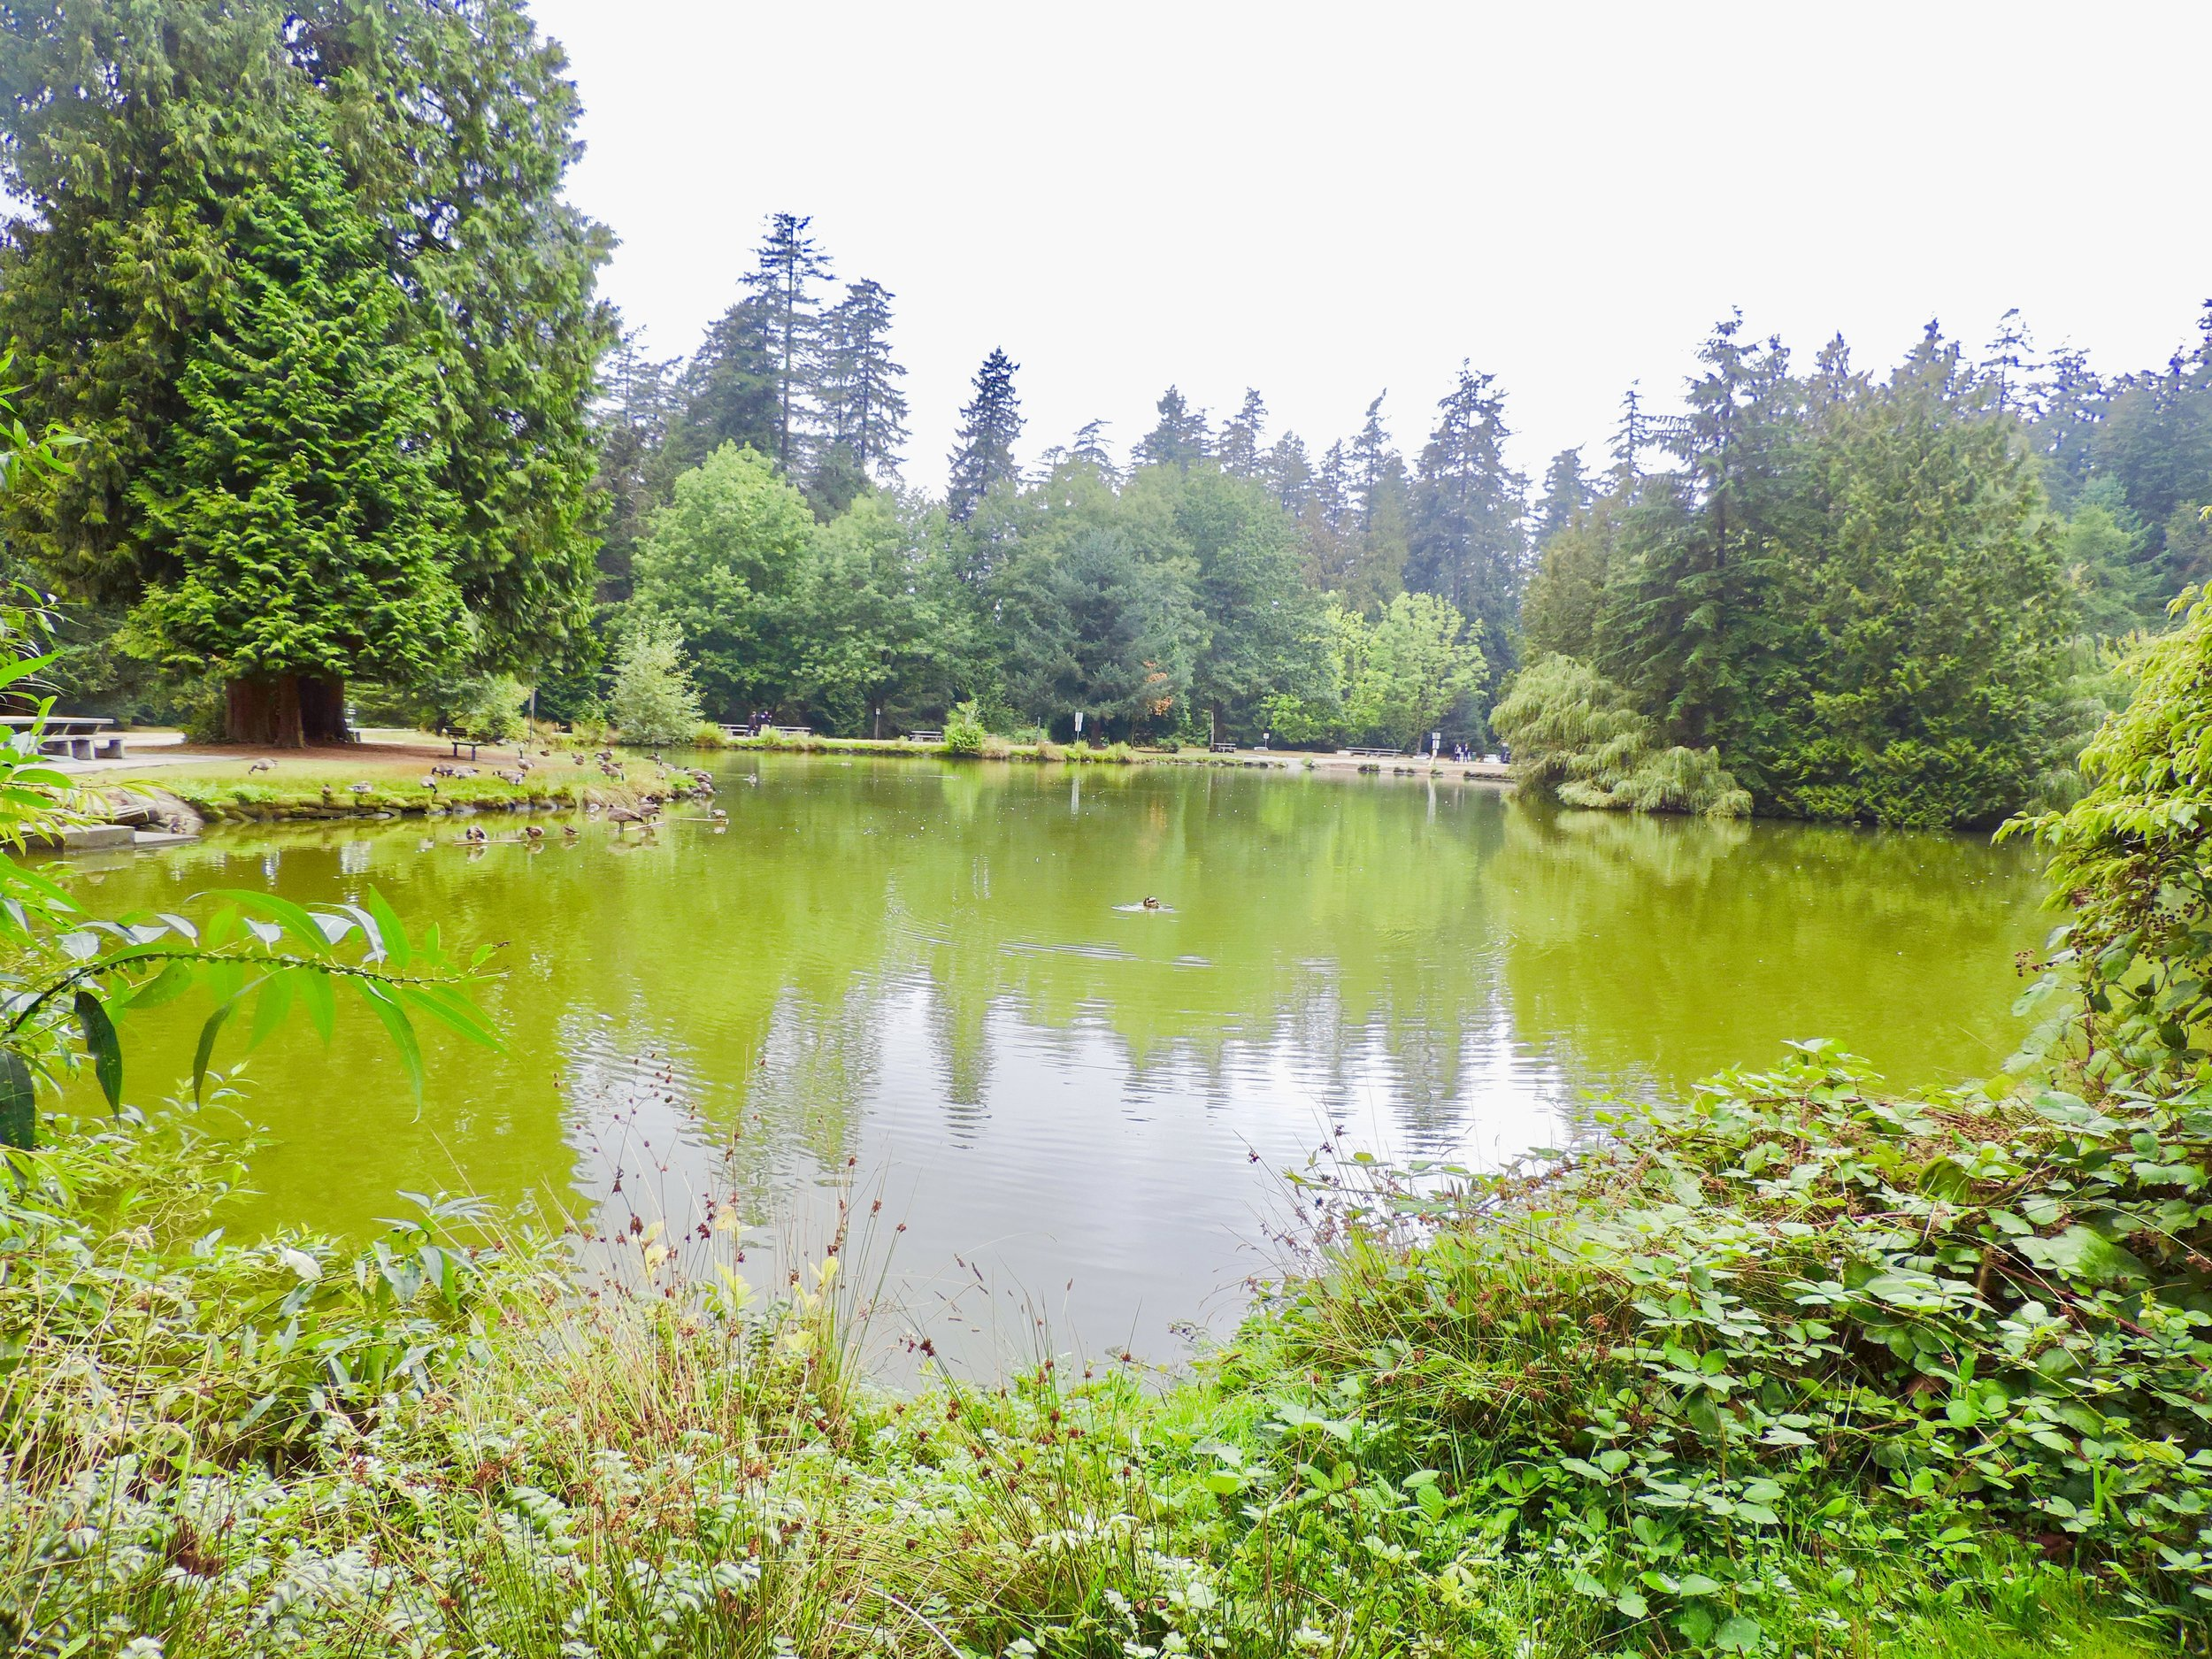 & of course... we visited Lower Pond